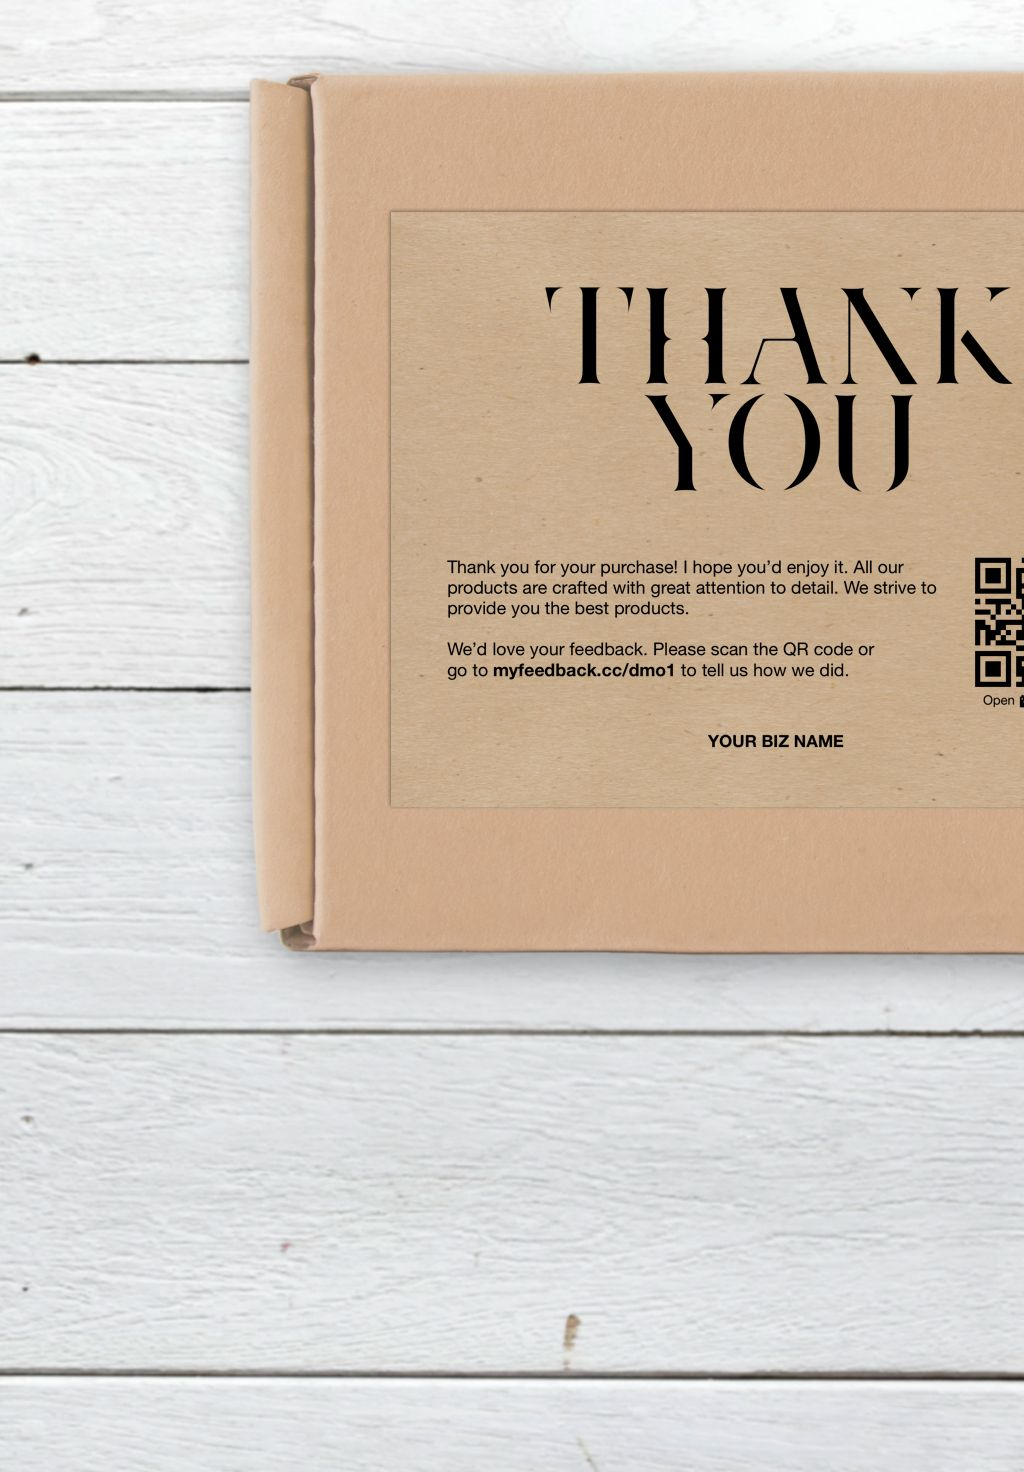 Thank You Printable Tags Lovely Business Thank You Card Thank You For Your Purchase Packaging Thank You Card Template Photo Thank You Cards Thank You Card Size